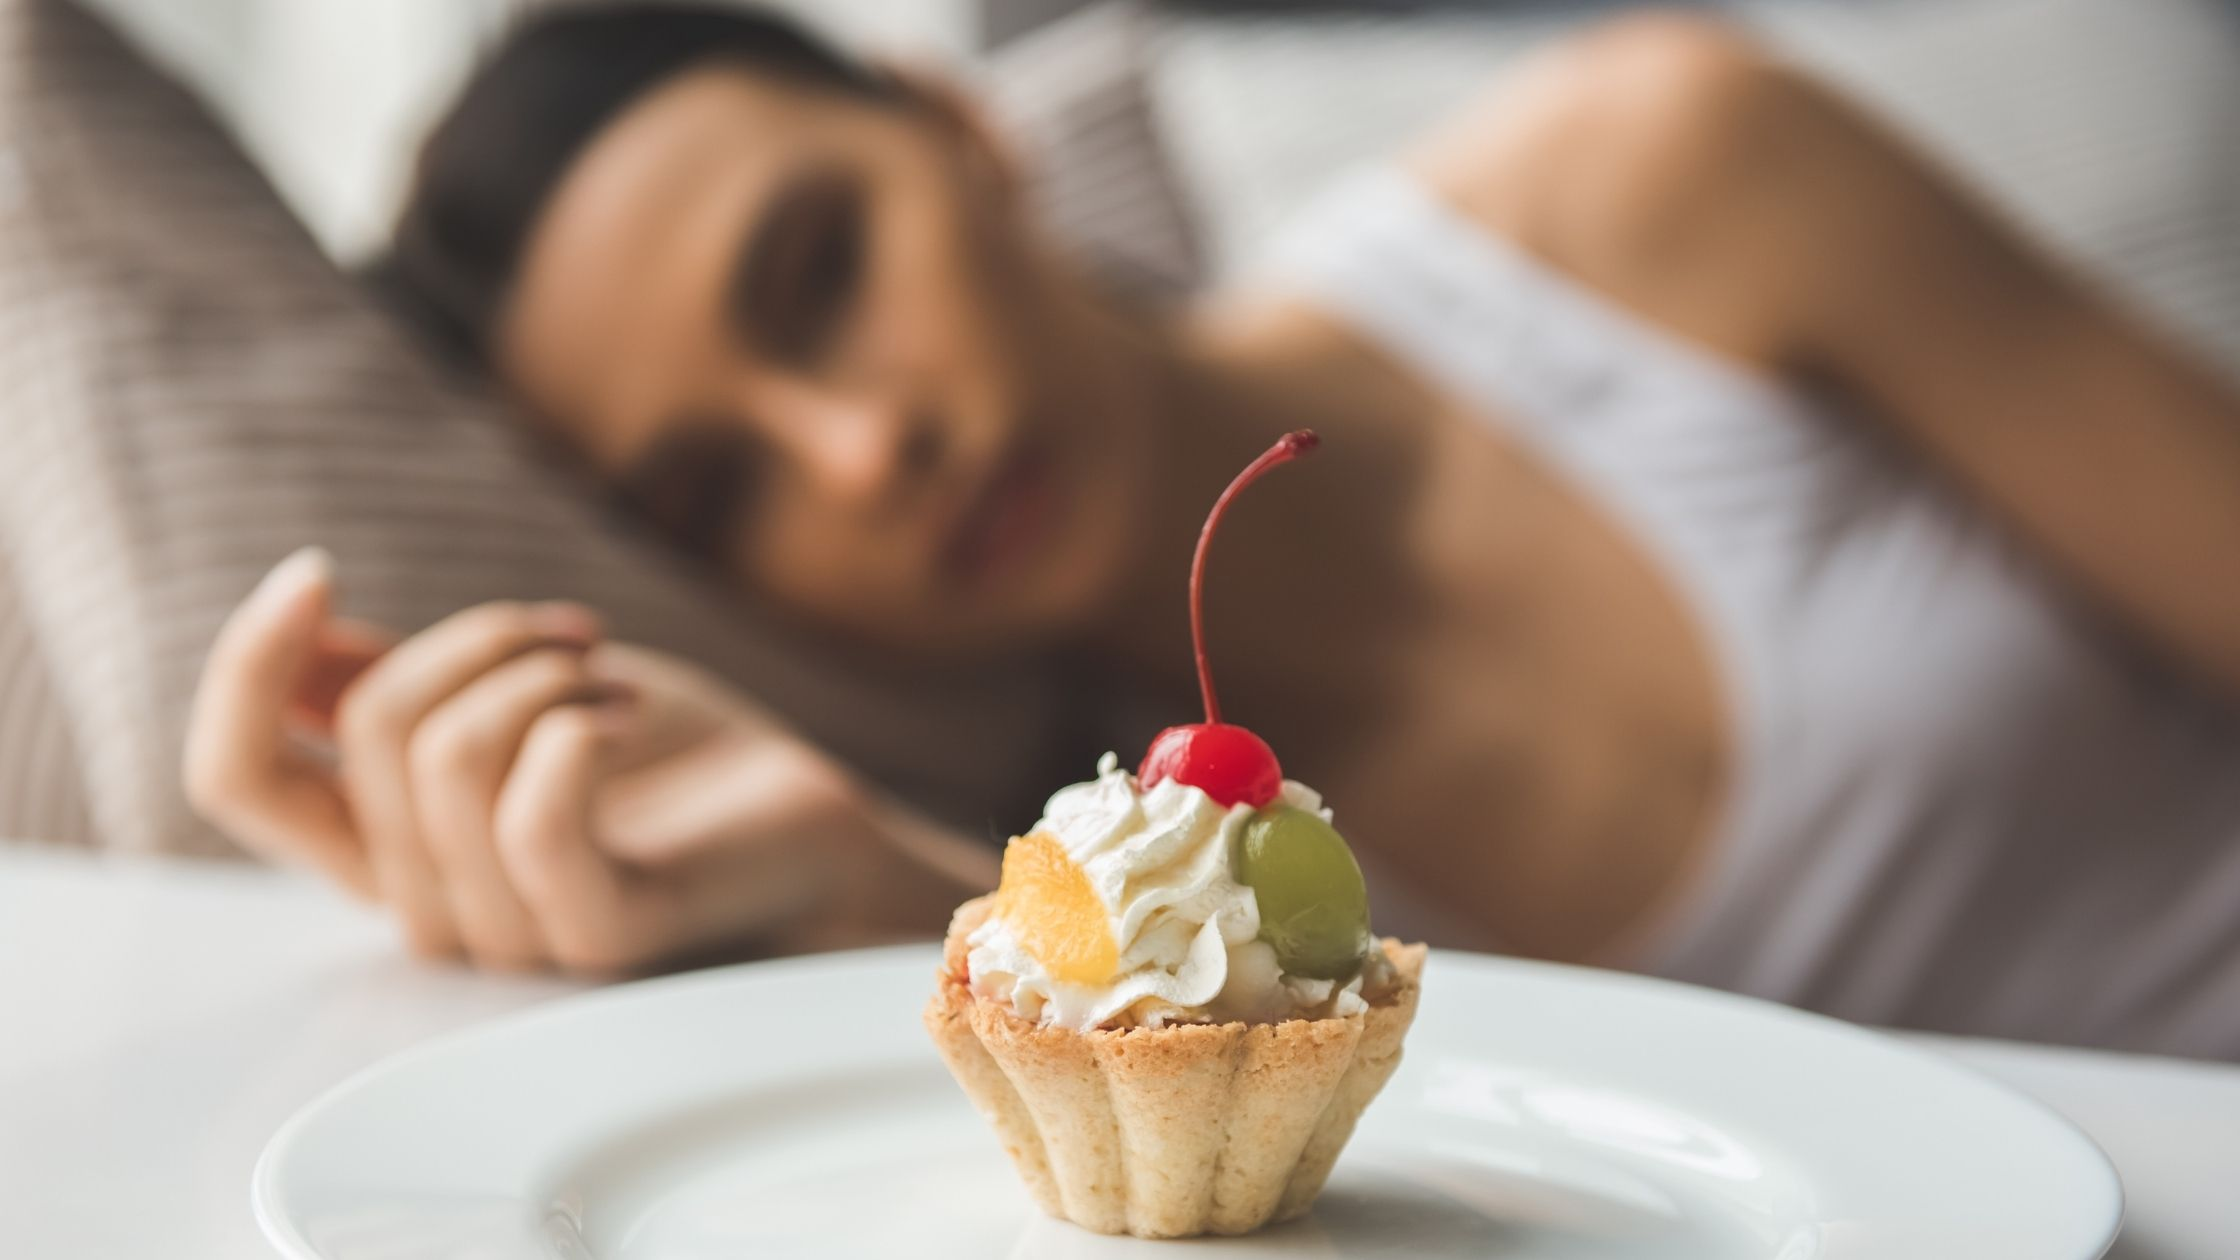 How to Manage Mood Swings During the Diet